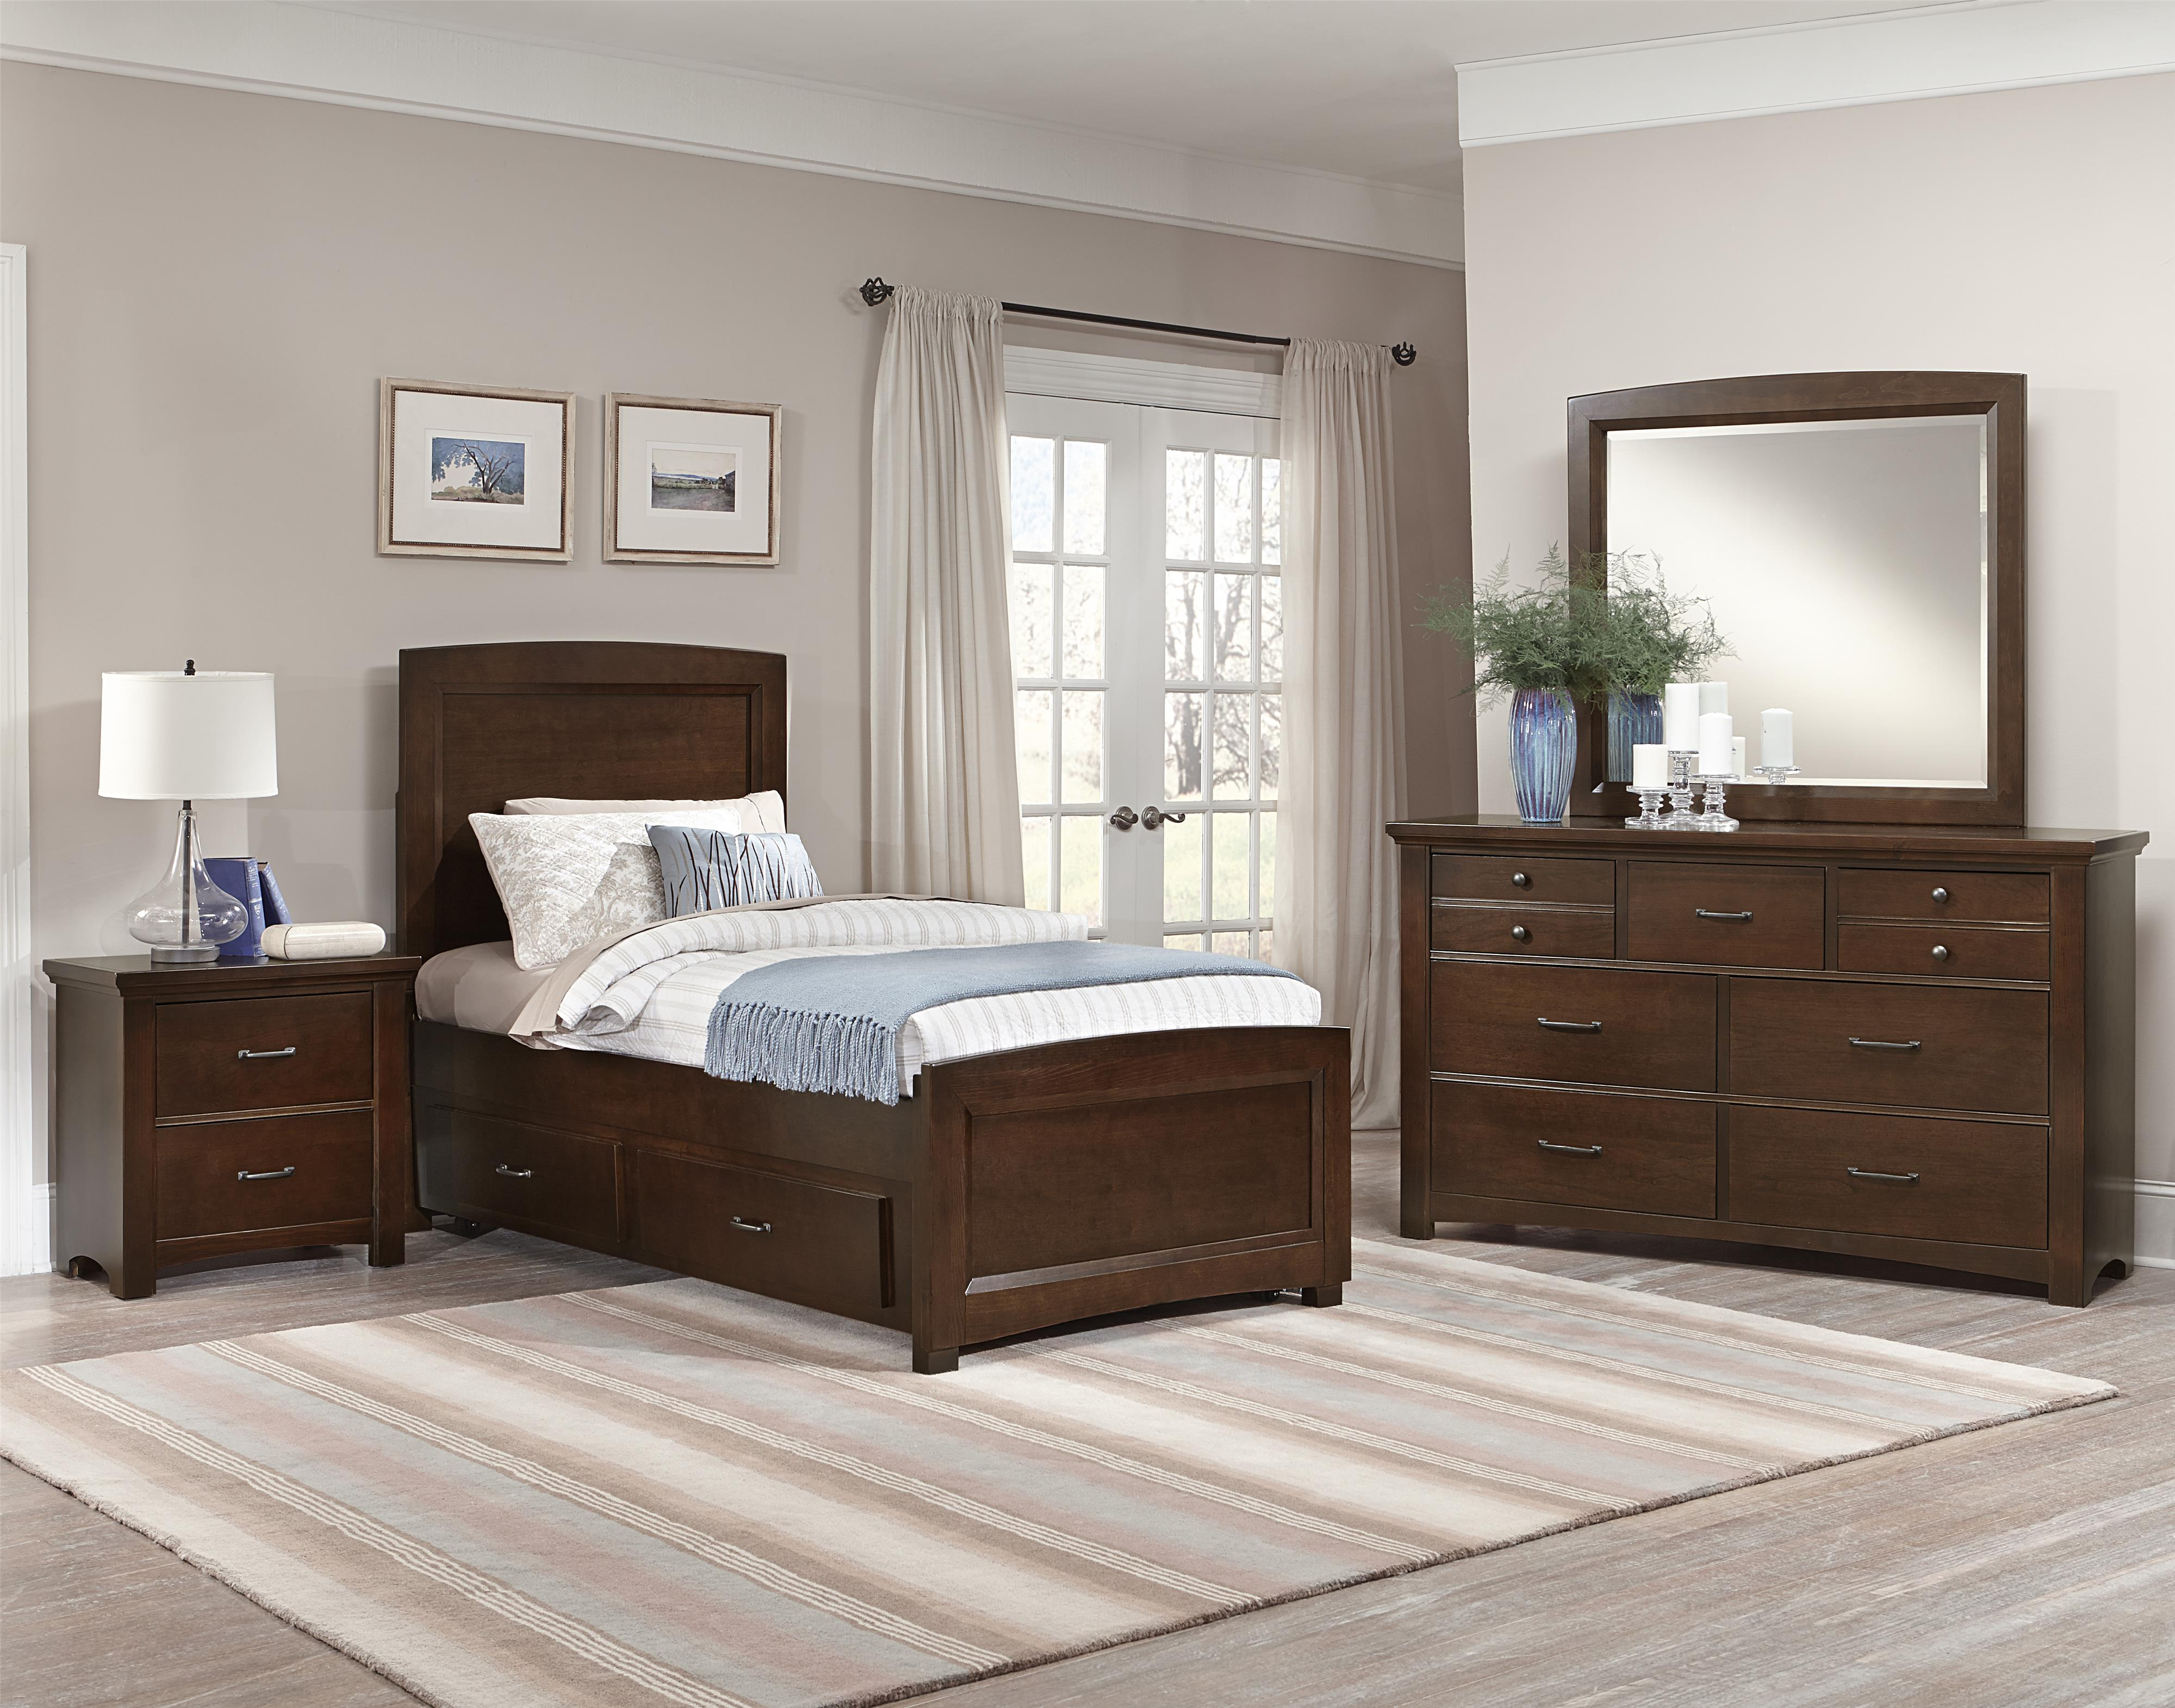 vaughan bassett transitions twin bedroom group northeast 17708 | products 2fvaughan bassett 2fcolor 2ftransitions 20 2025422930 bb68 20t 20bedroom 20group 202 b0